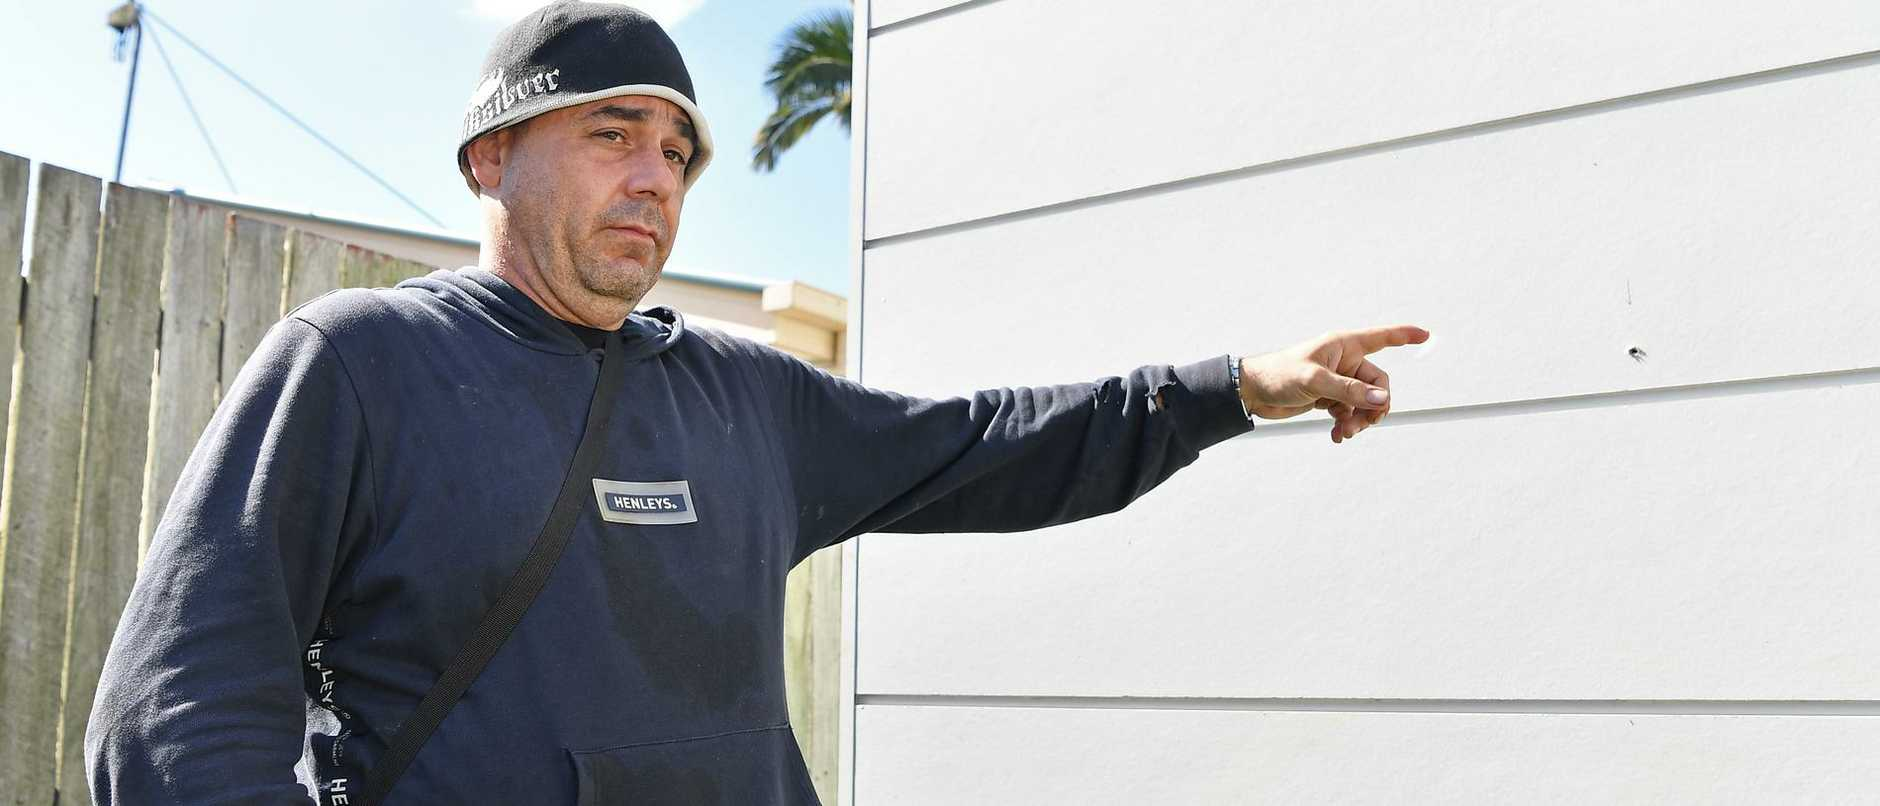 Nambour's Michael Eugene shows where his neighbour's unit was shot up.